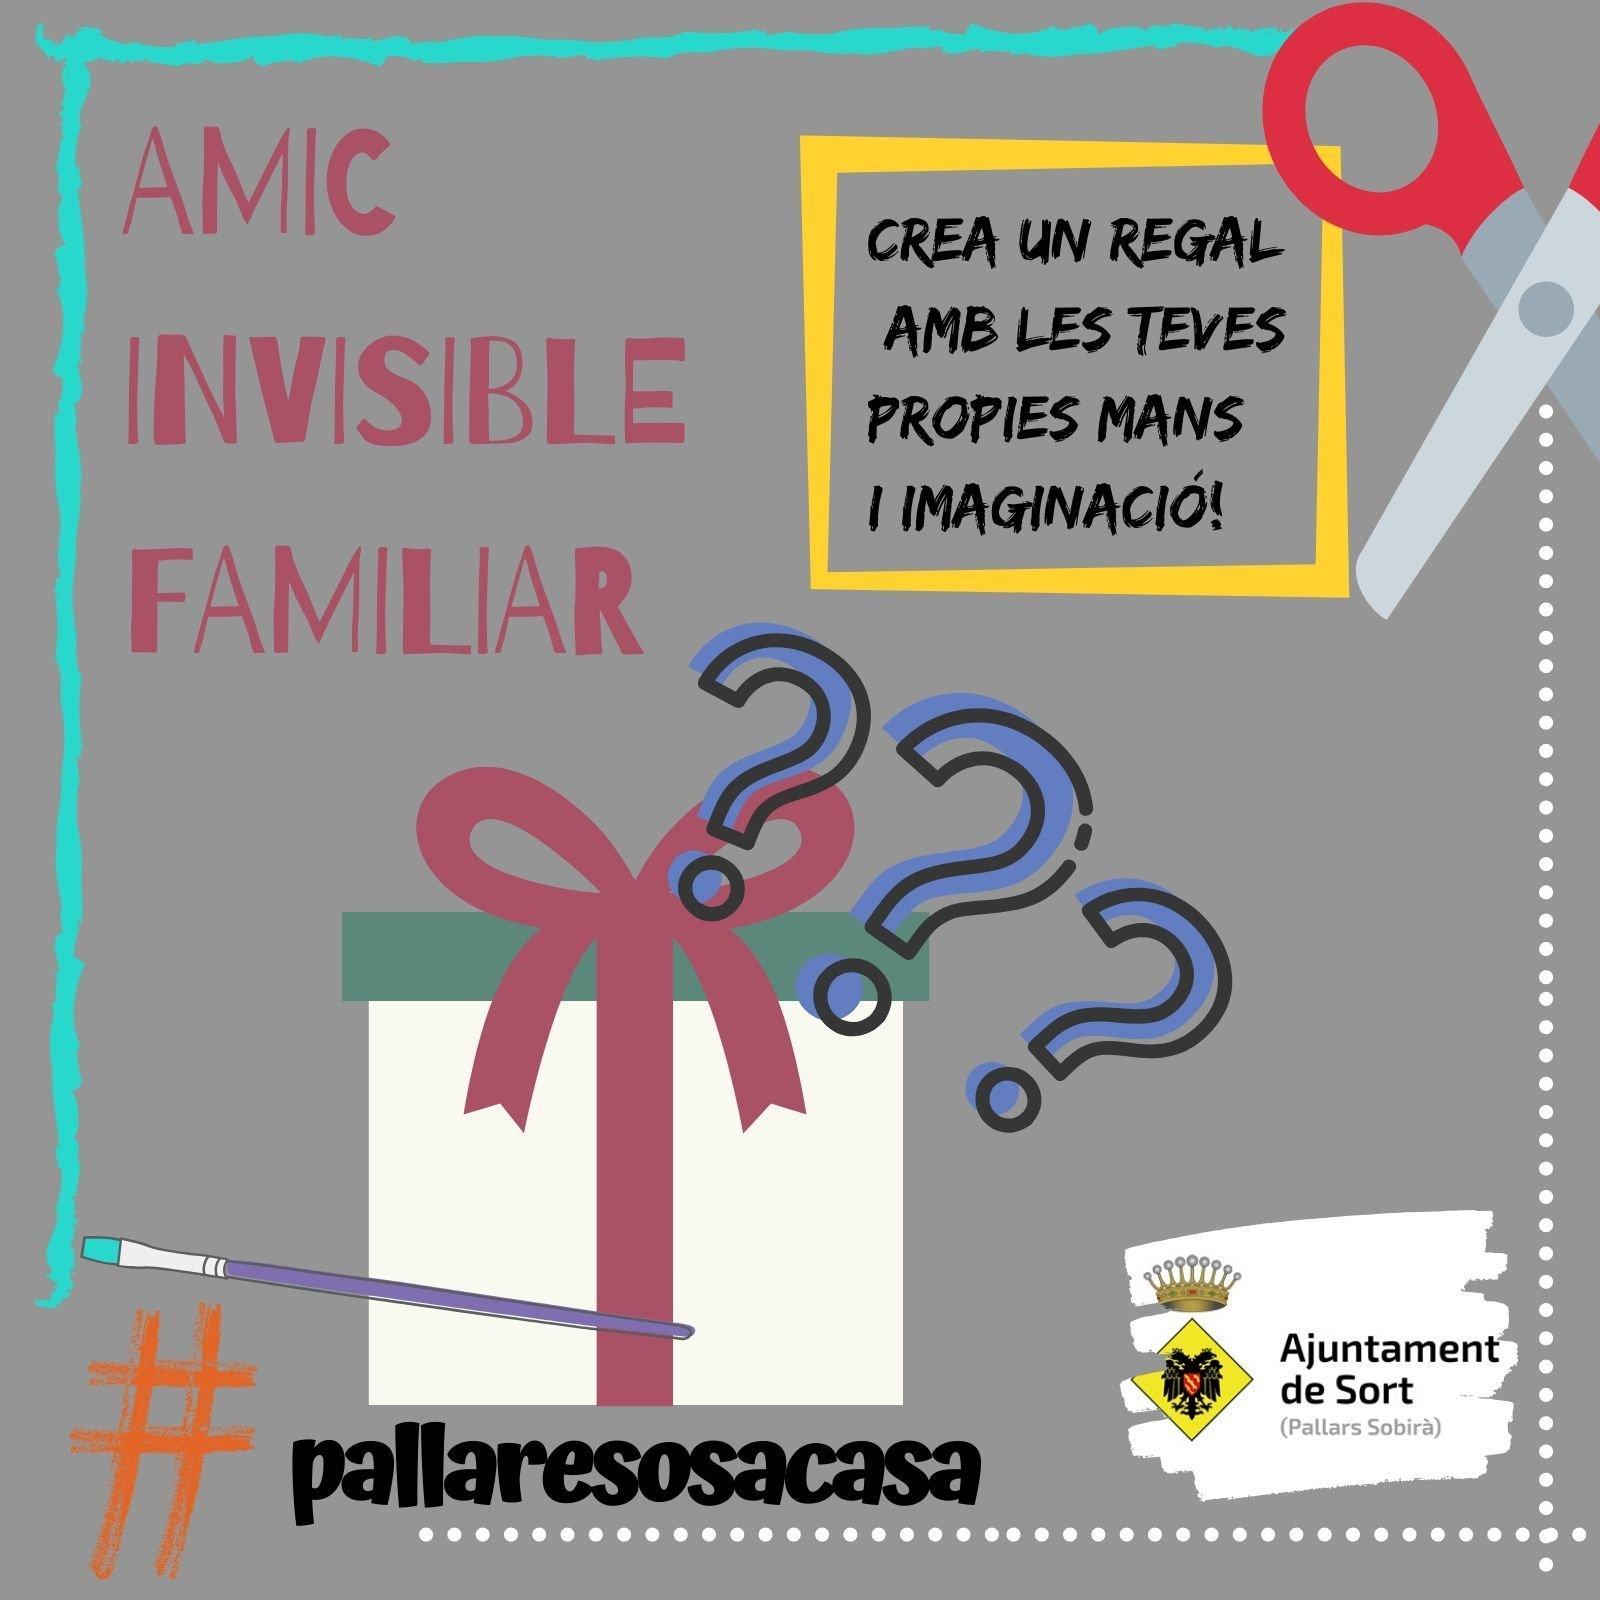 Amic invisible familiar